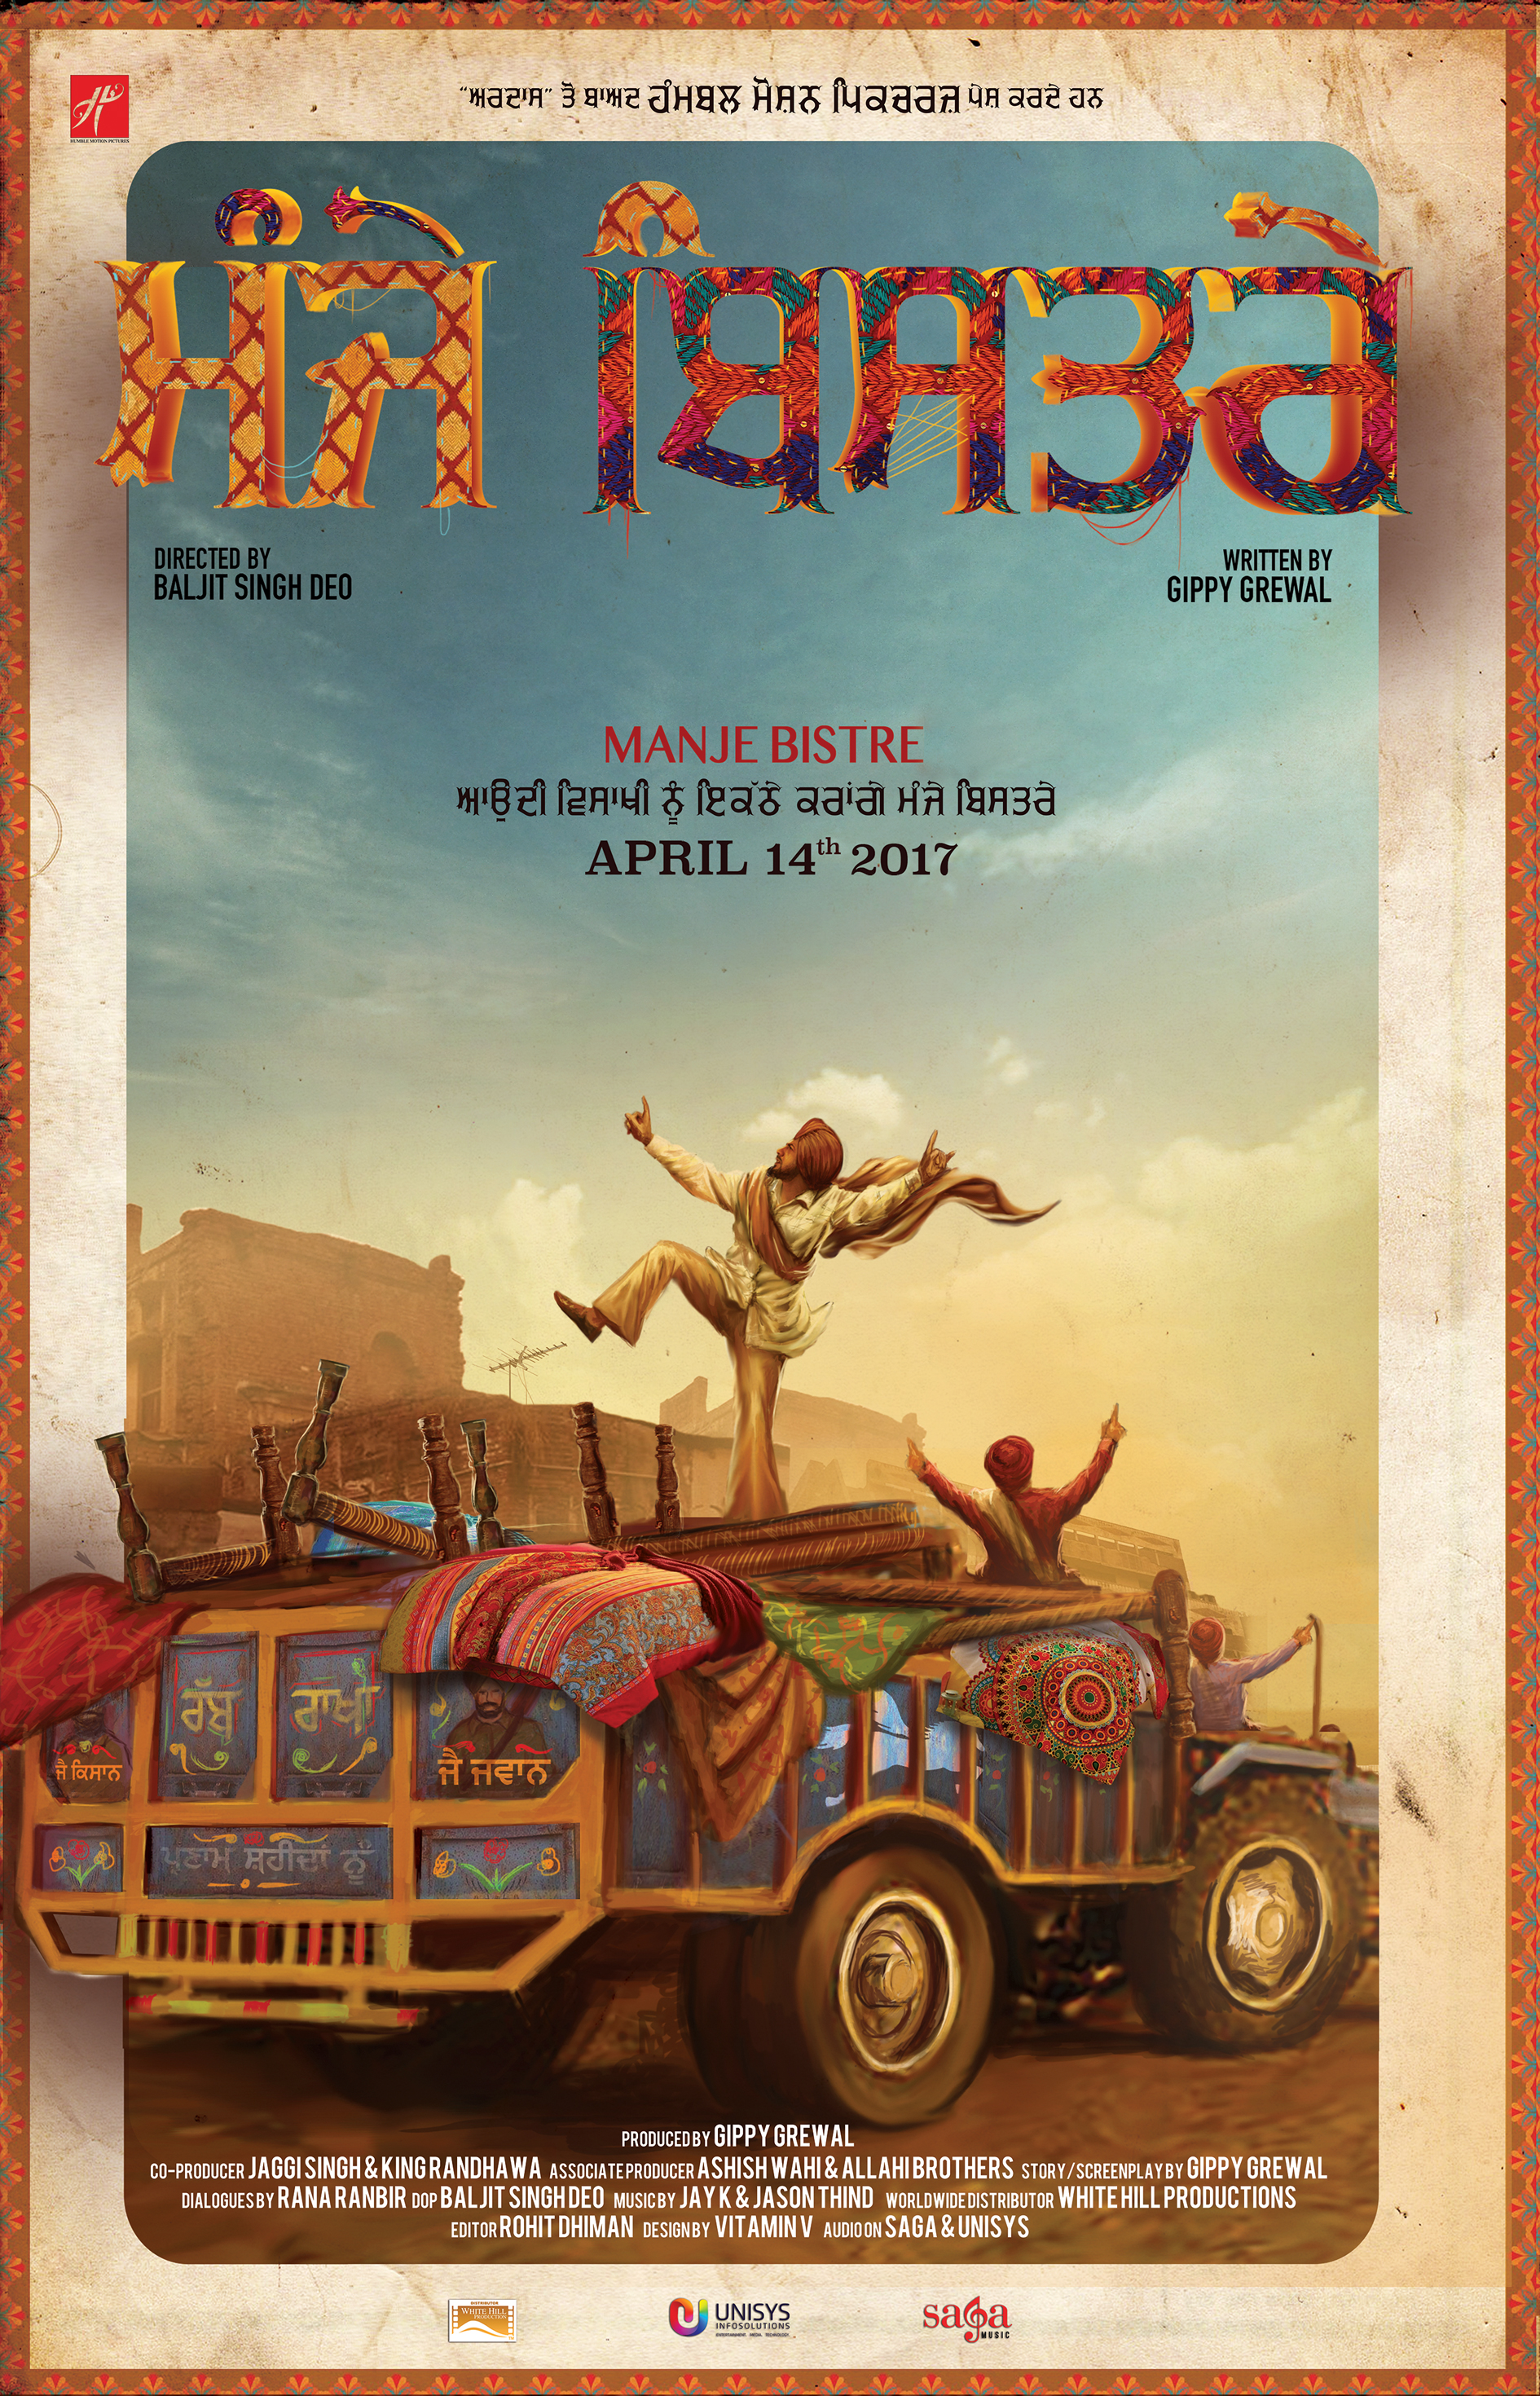 manje bistre full movie download 300mb